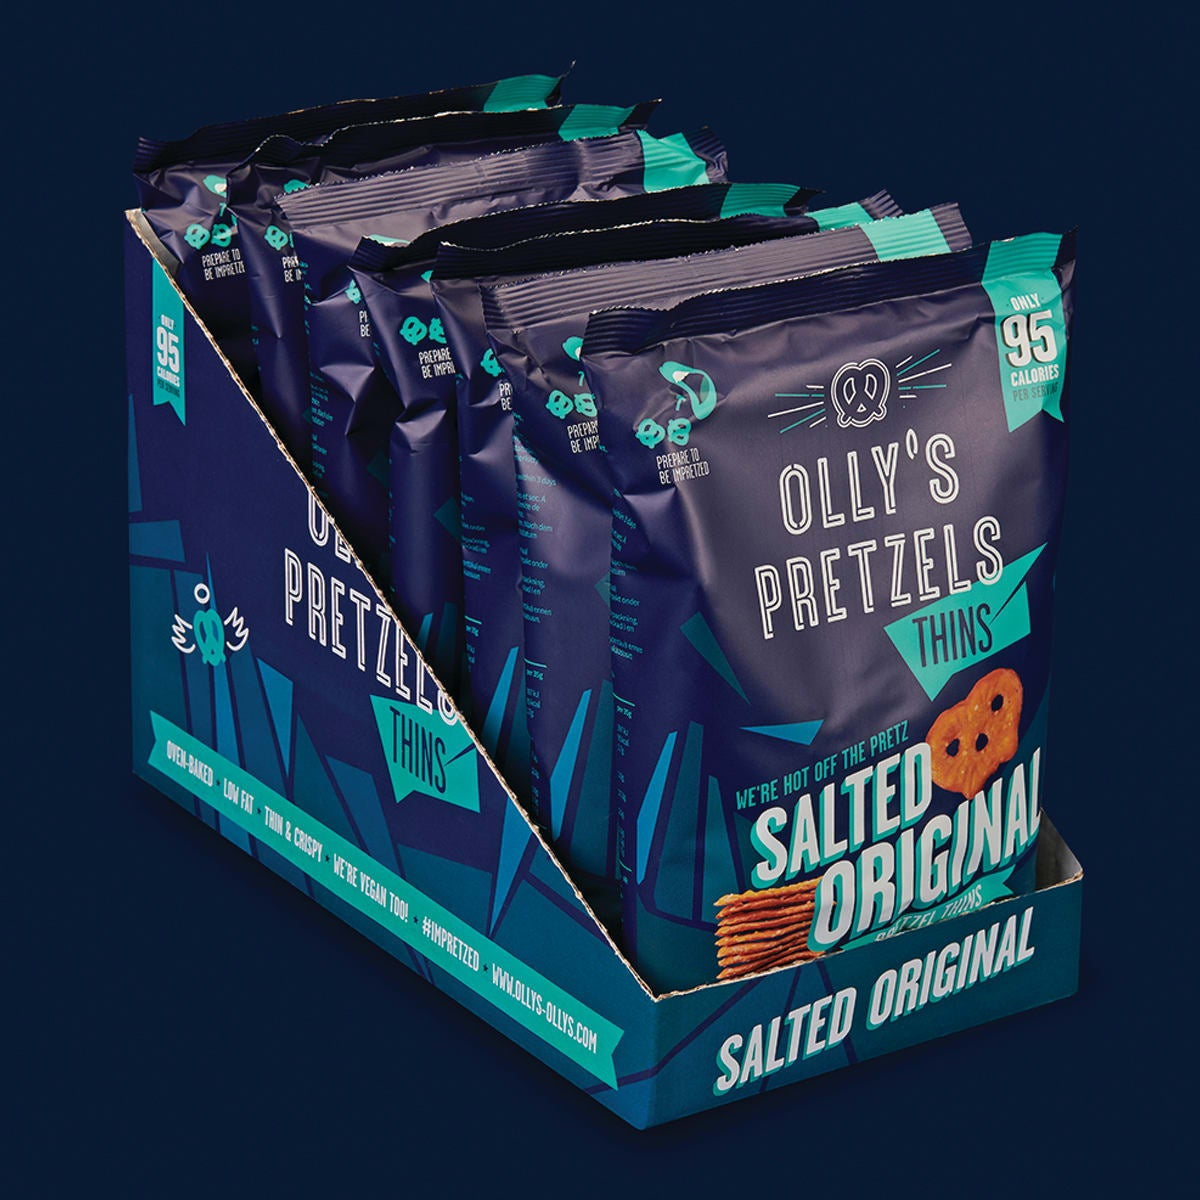 Box of 10, Olly's Salted Pretzel Thins, 35g, thin, crispy, 80% less fat and 45% fewer calories than average potato crisps, oven-baked, 3 SmartPoints values, suitable for vegans